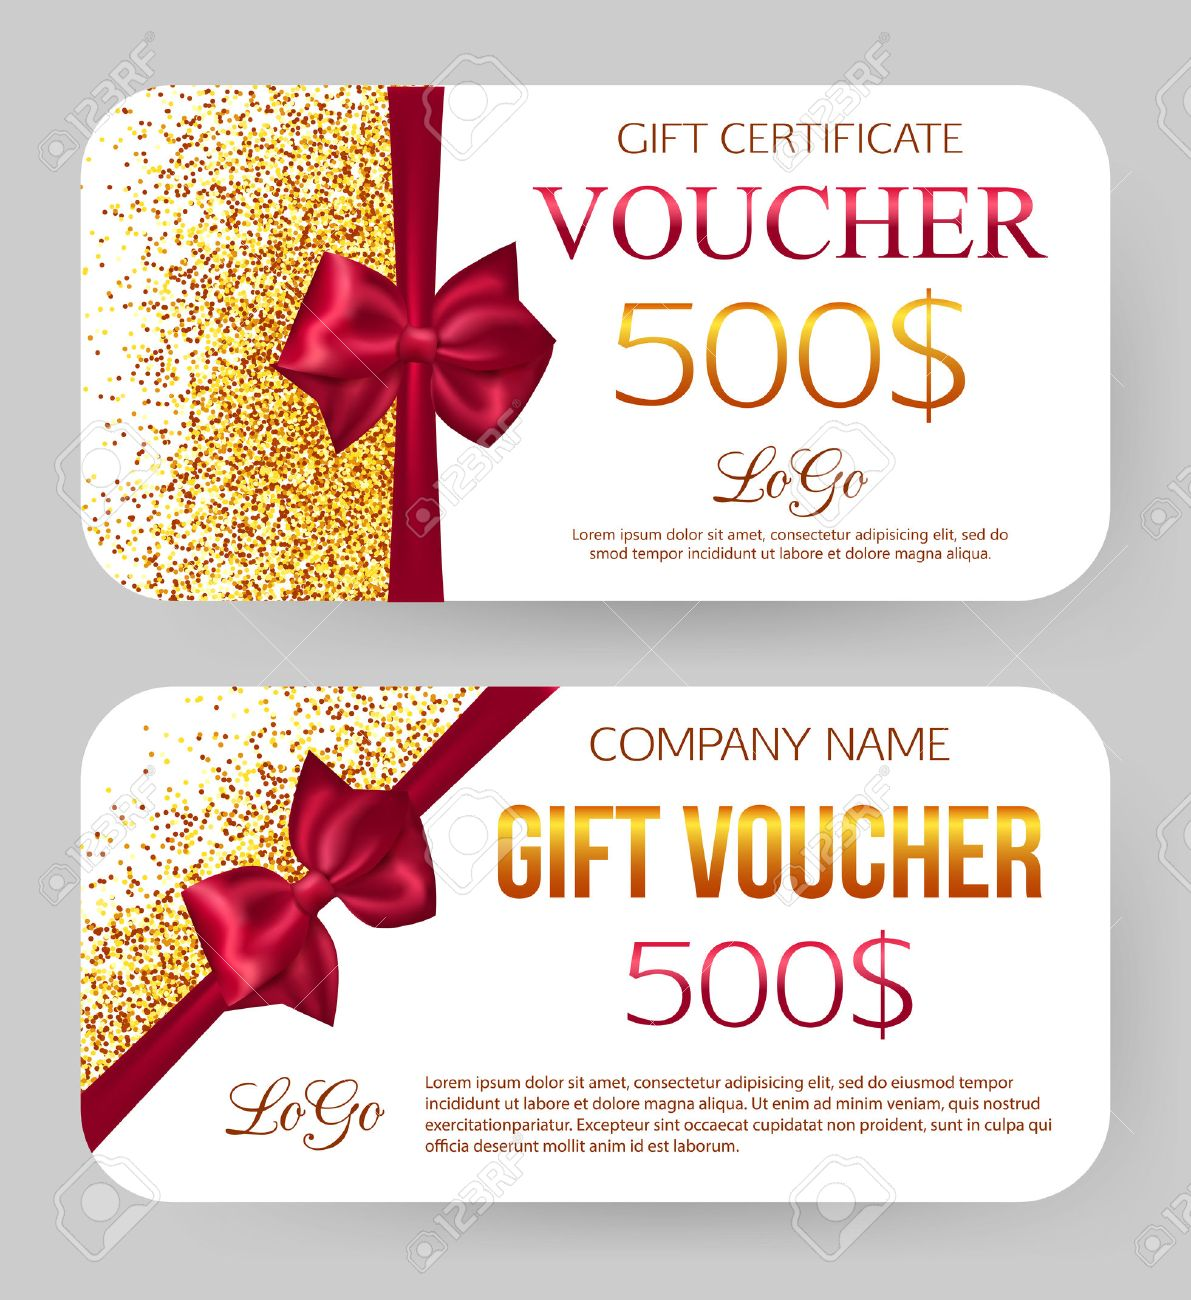 Gift voucher template golden design for gift certificate coupon gift voucher template golden design for gift certificate coupon golden dust 500 yadclub Gallery